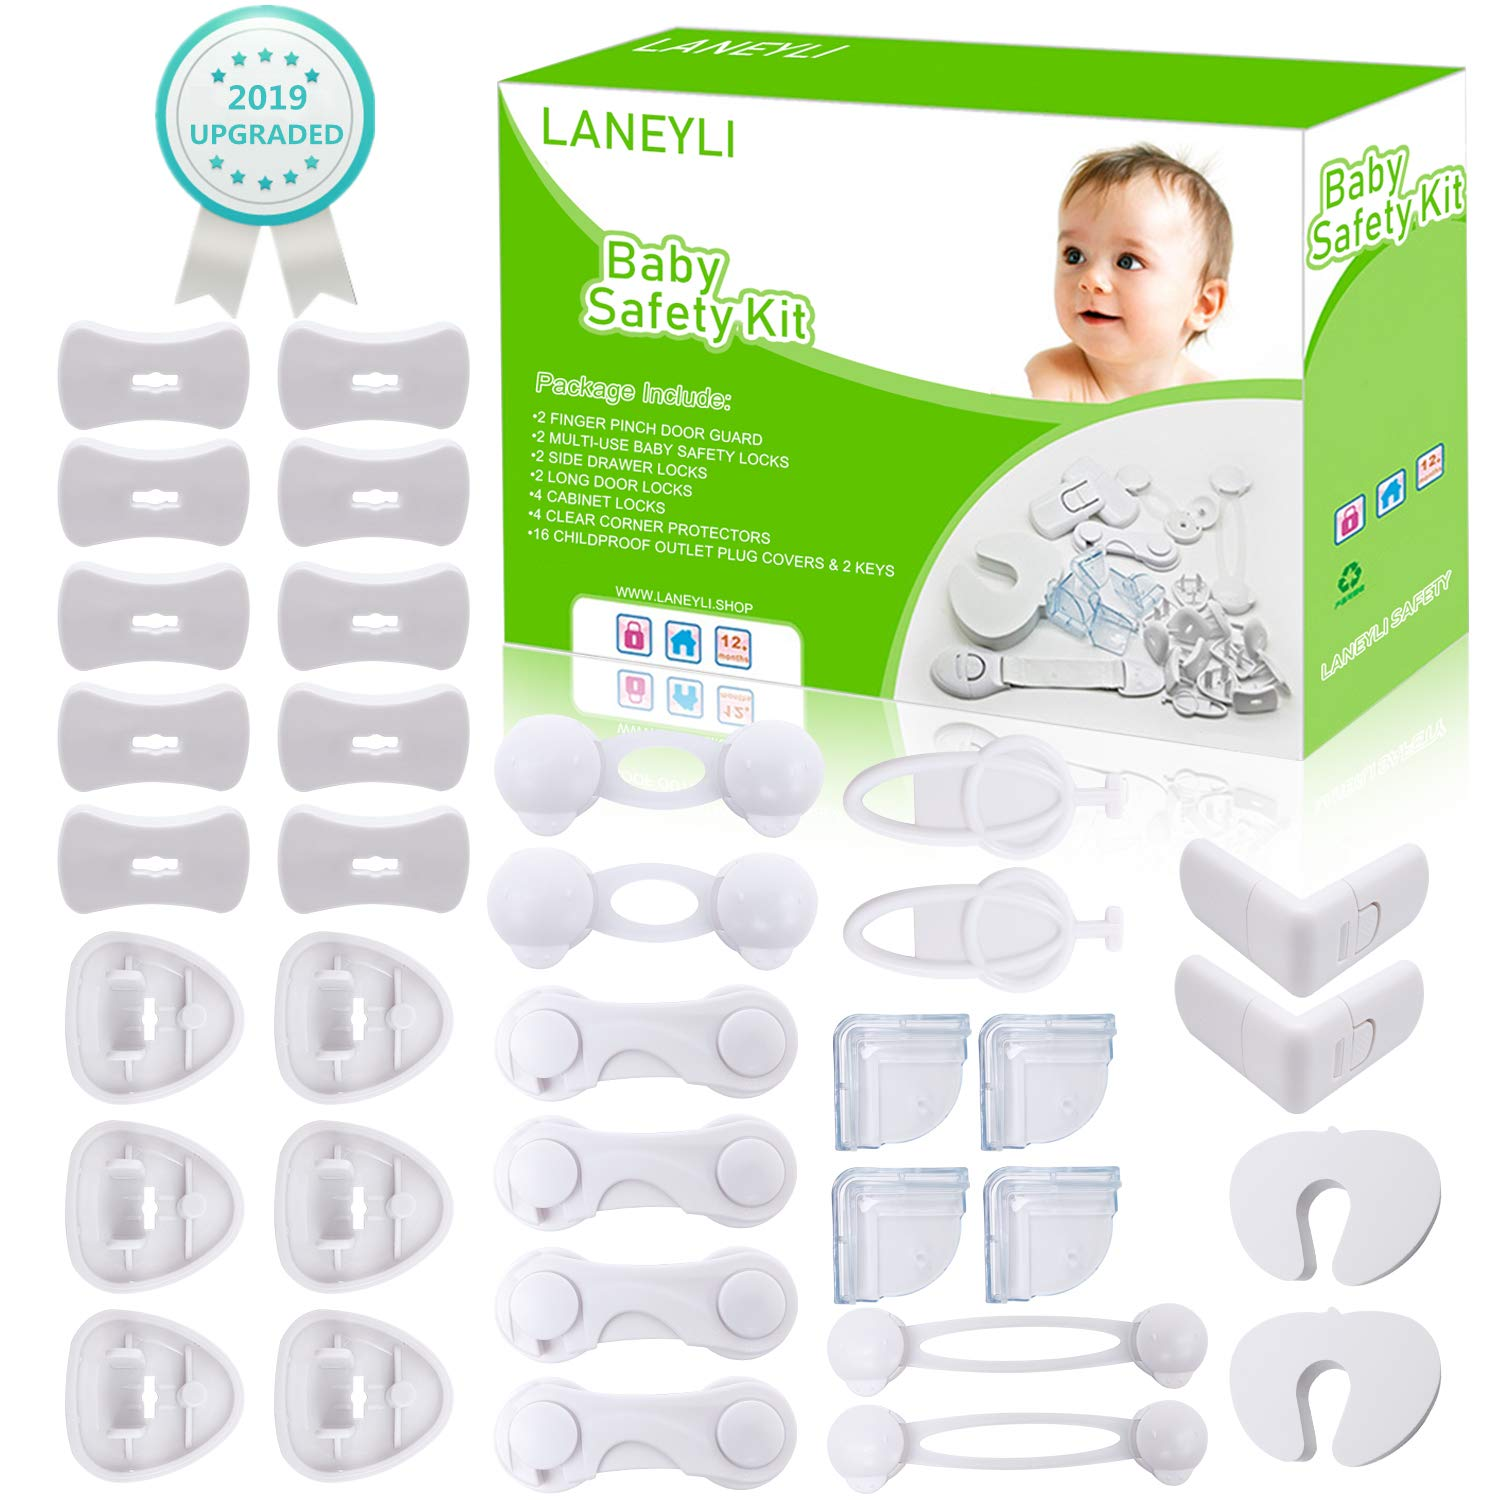 Baby Safety Kit LANEYLI Proofing Kit with Door and Cabinet Locks, Drawer Locks, Multi-use Safety Locks, Clear Corner Protectors, Outlet Covers Accident Proof Devices Tools Free No Drill Required 34Pcs